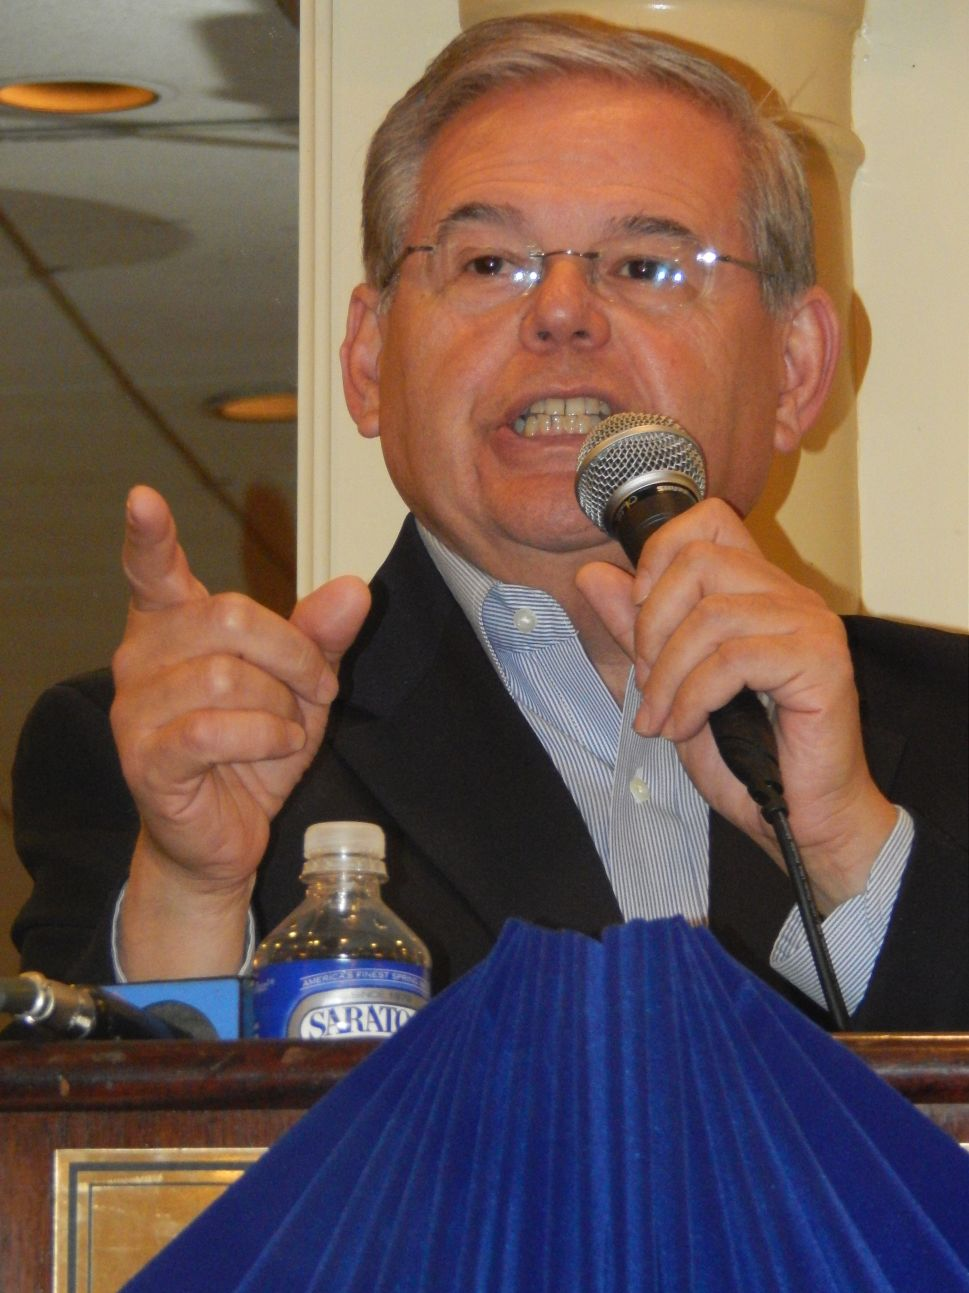 On Election Day in NJ, Menendez calls prez election in Syria a 'shameful mockery'